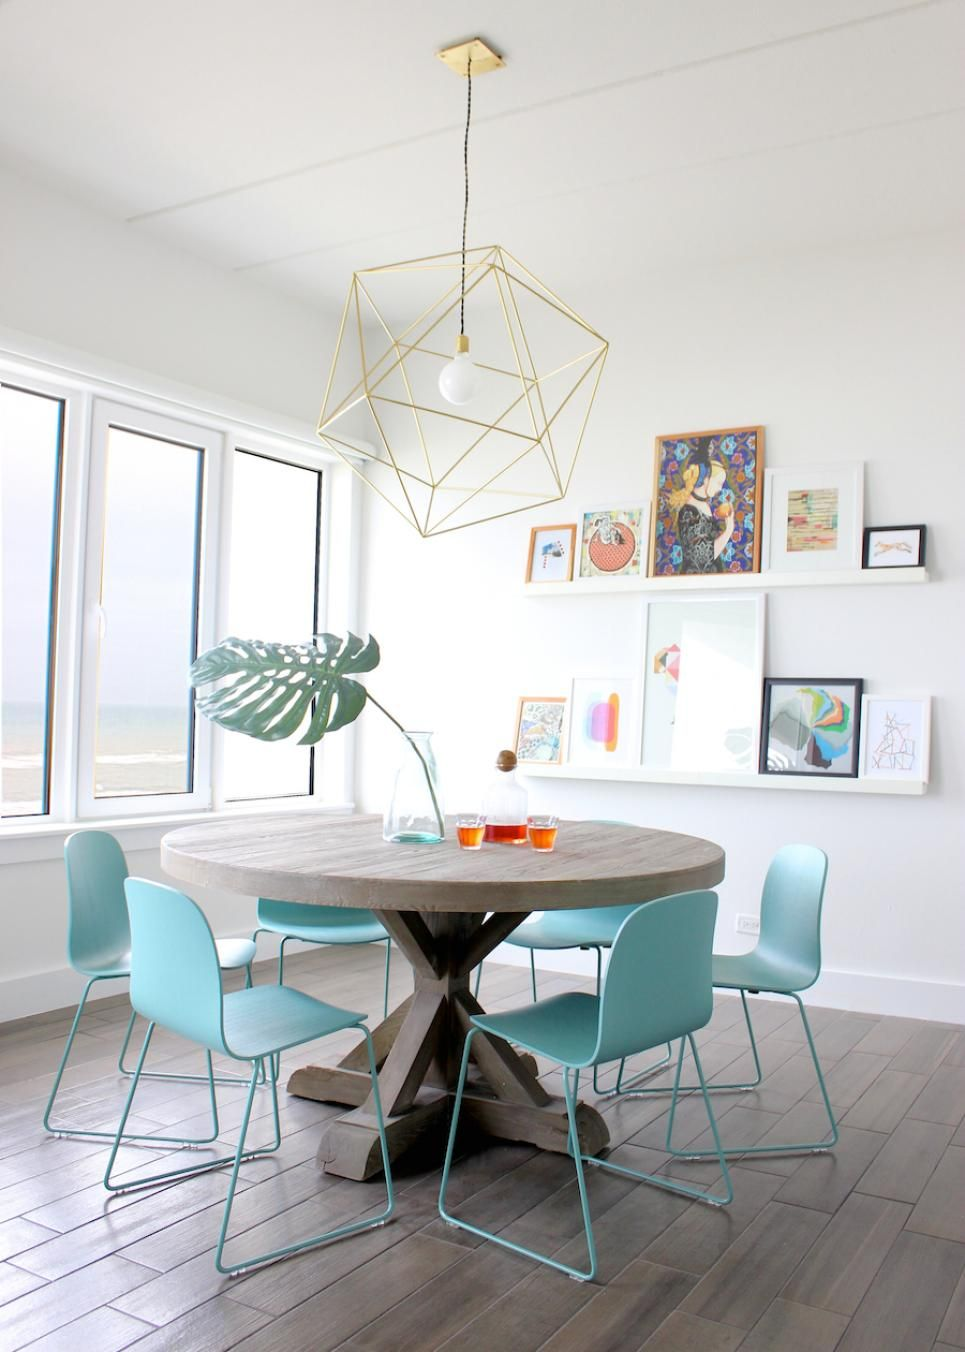 Aqua Dining Chairs A Round Wooden Dining Table Softens The Sharp Clean Lines In This